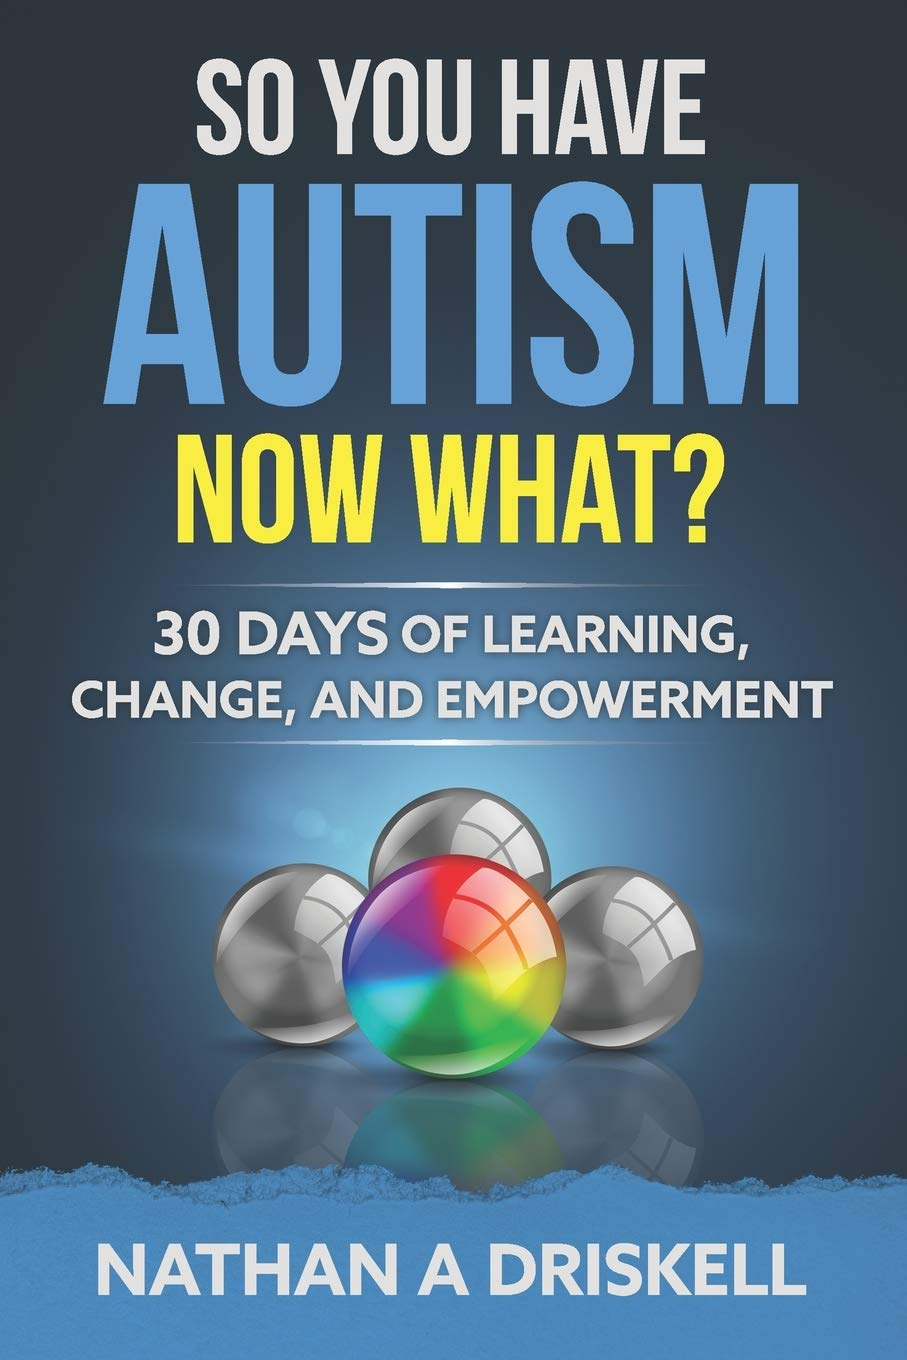 So You Have Autism, Now What?: 30 Days of Learning, Change, and Empowerment